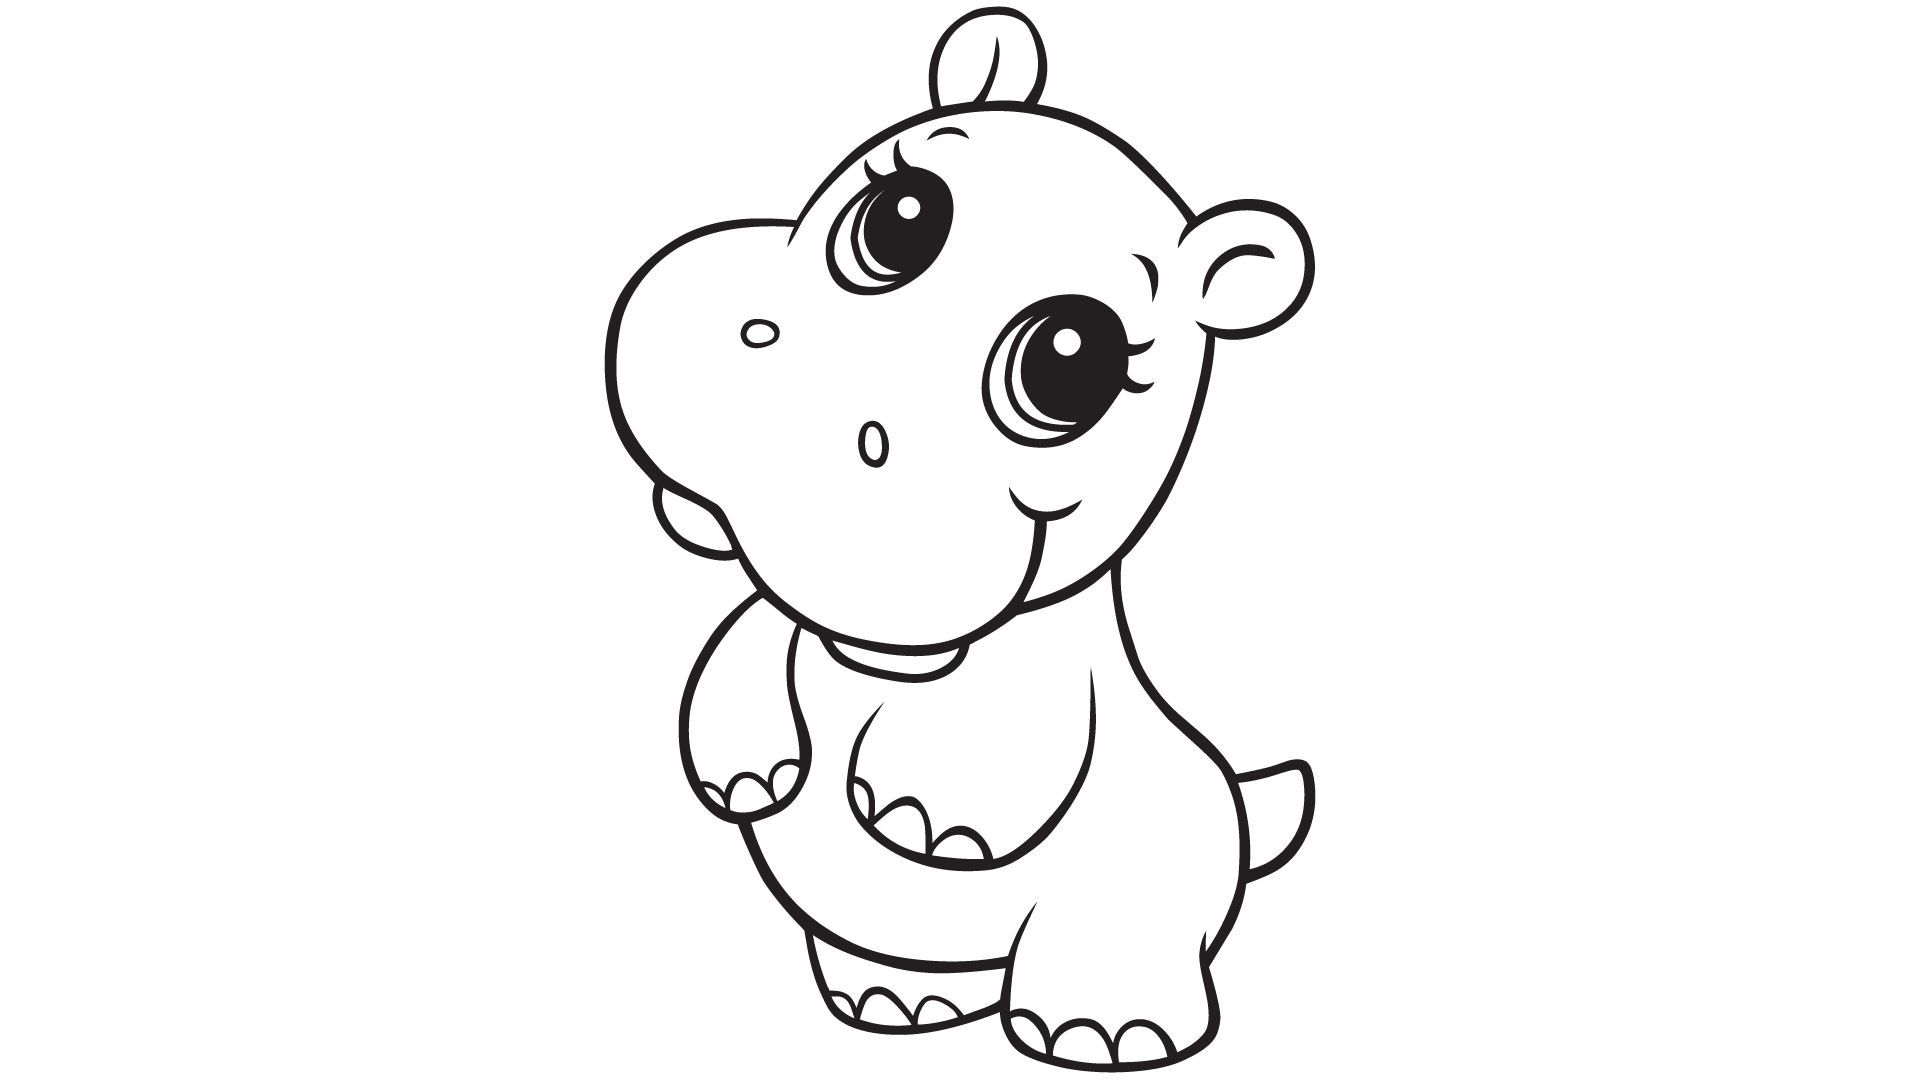 Snoopy coloring pages coloring pages pinterest patterns